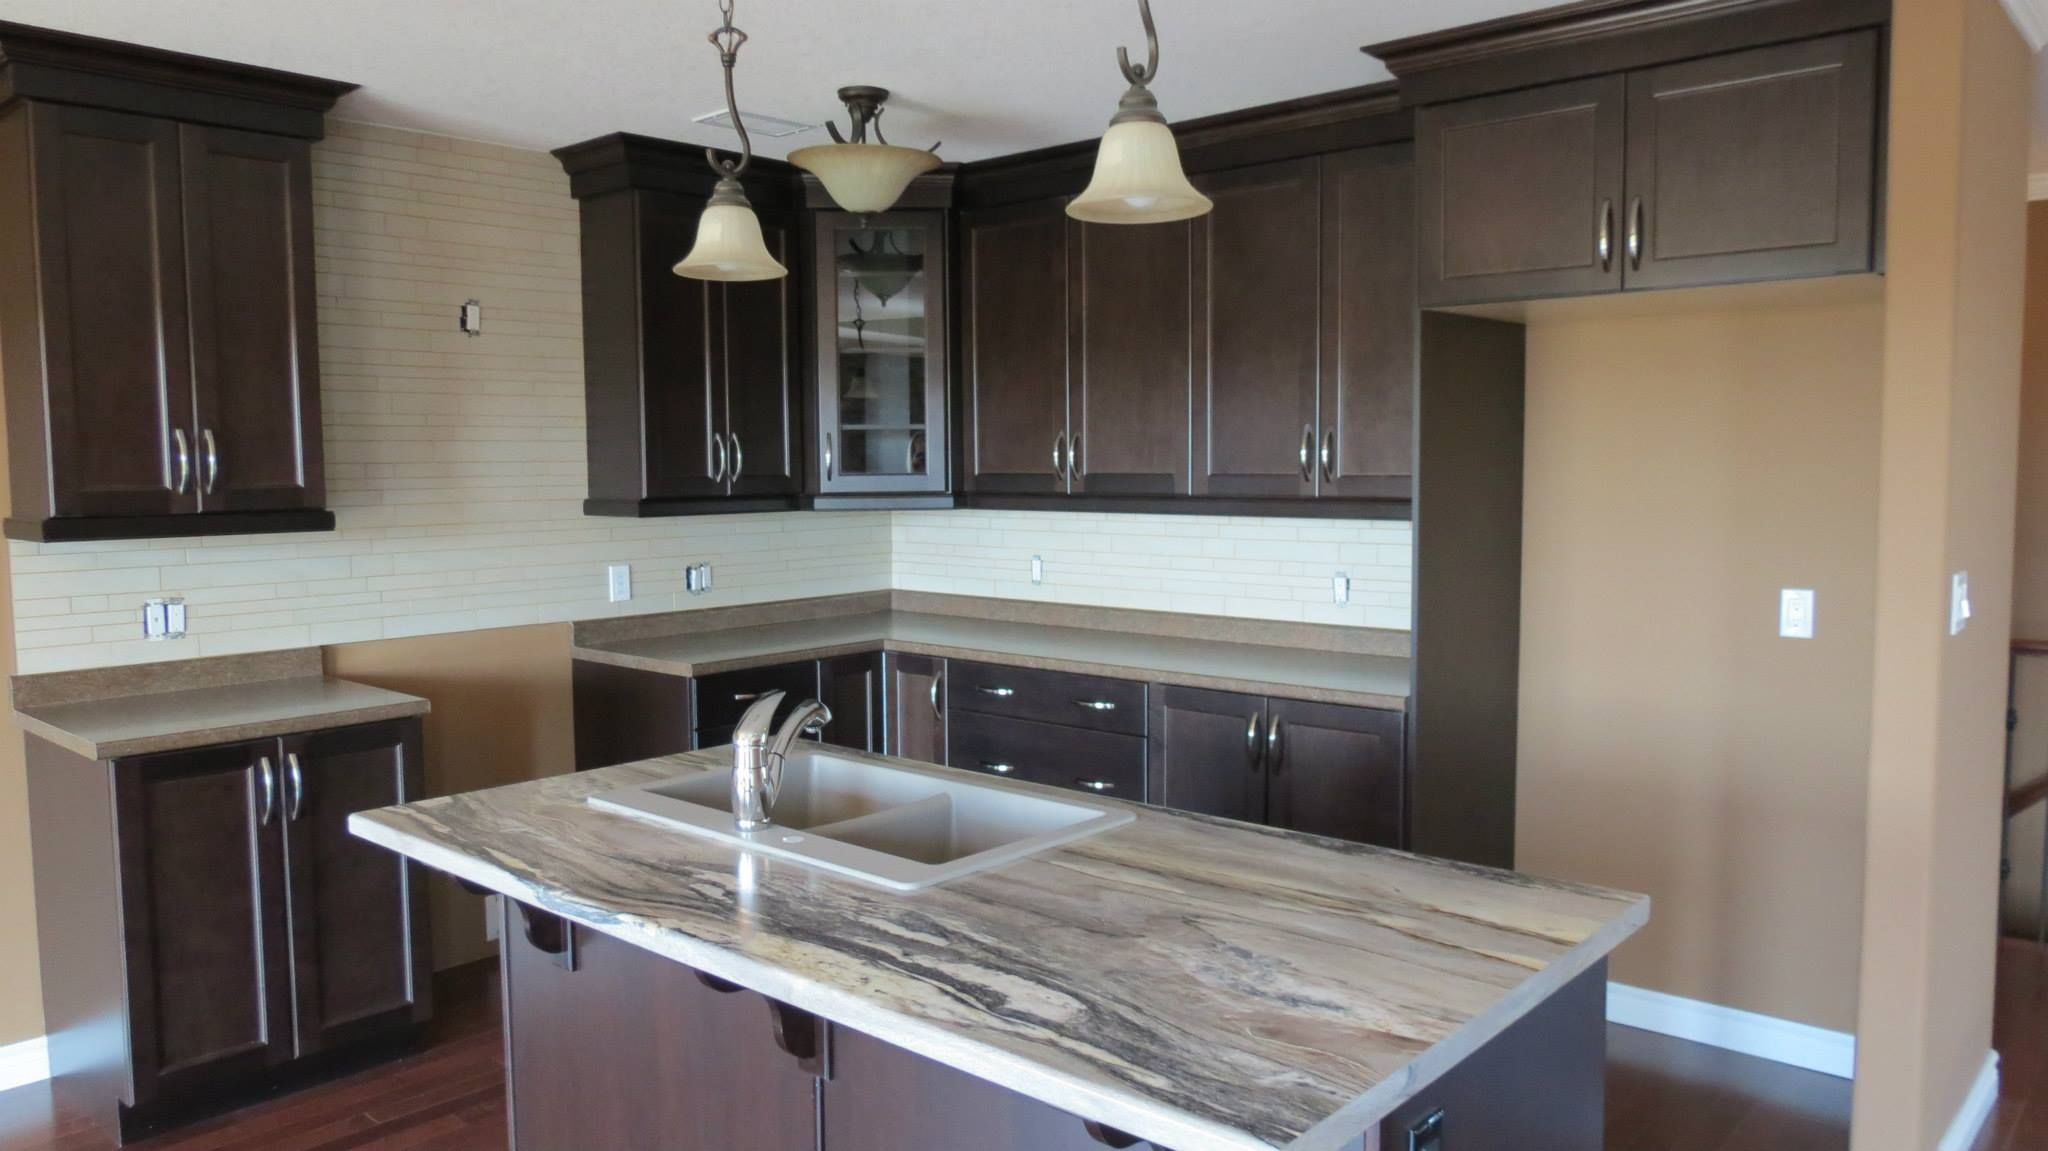 Cappuccino On Maple With Dolce Vita Laminate Island Top Kitchen Design New Kitchen Designs New Kitchen